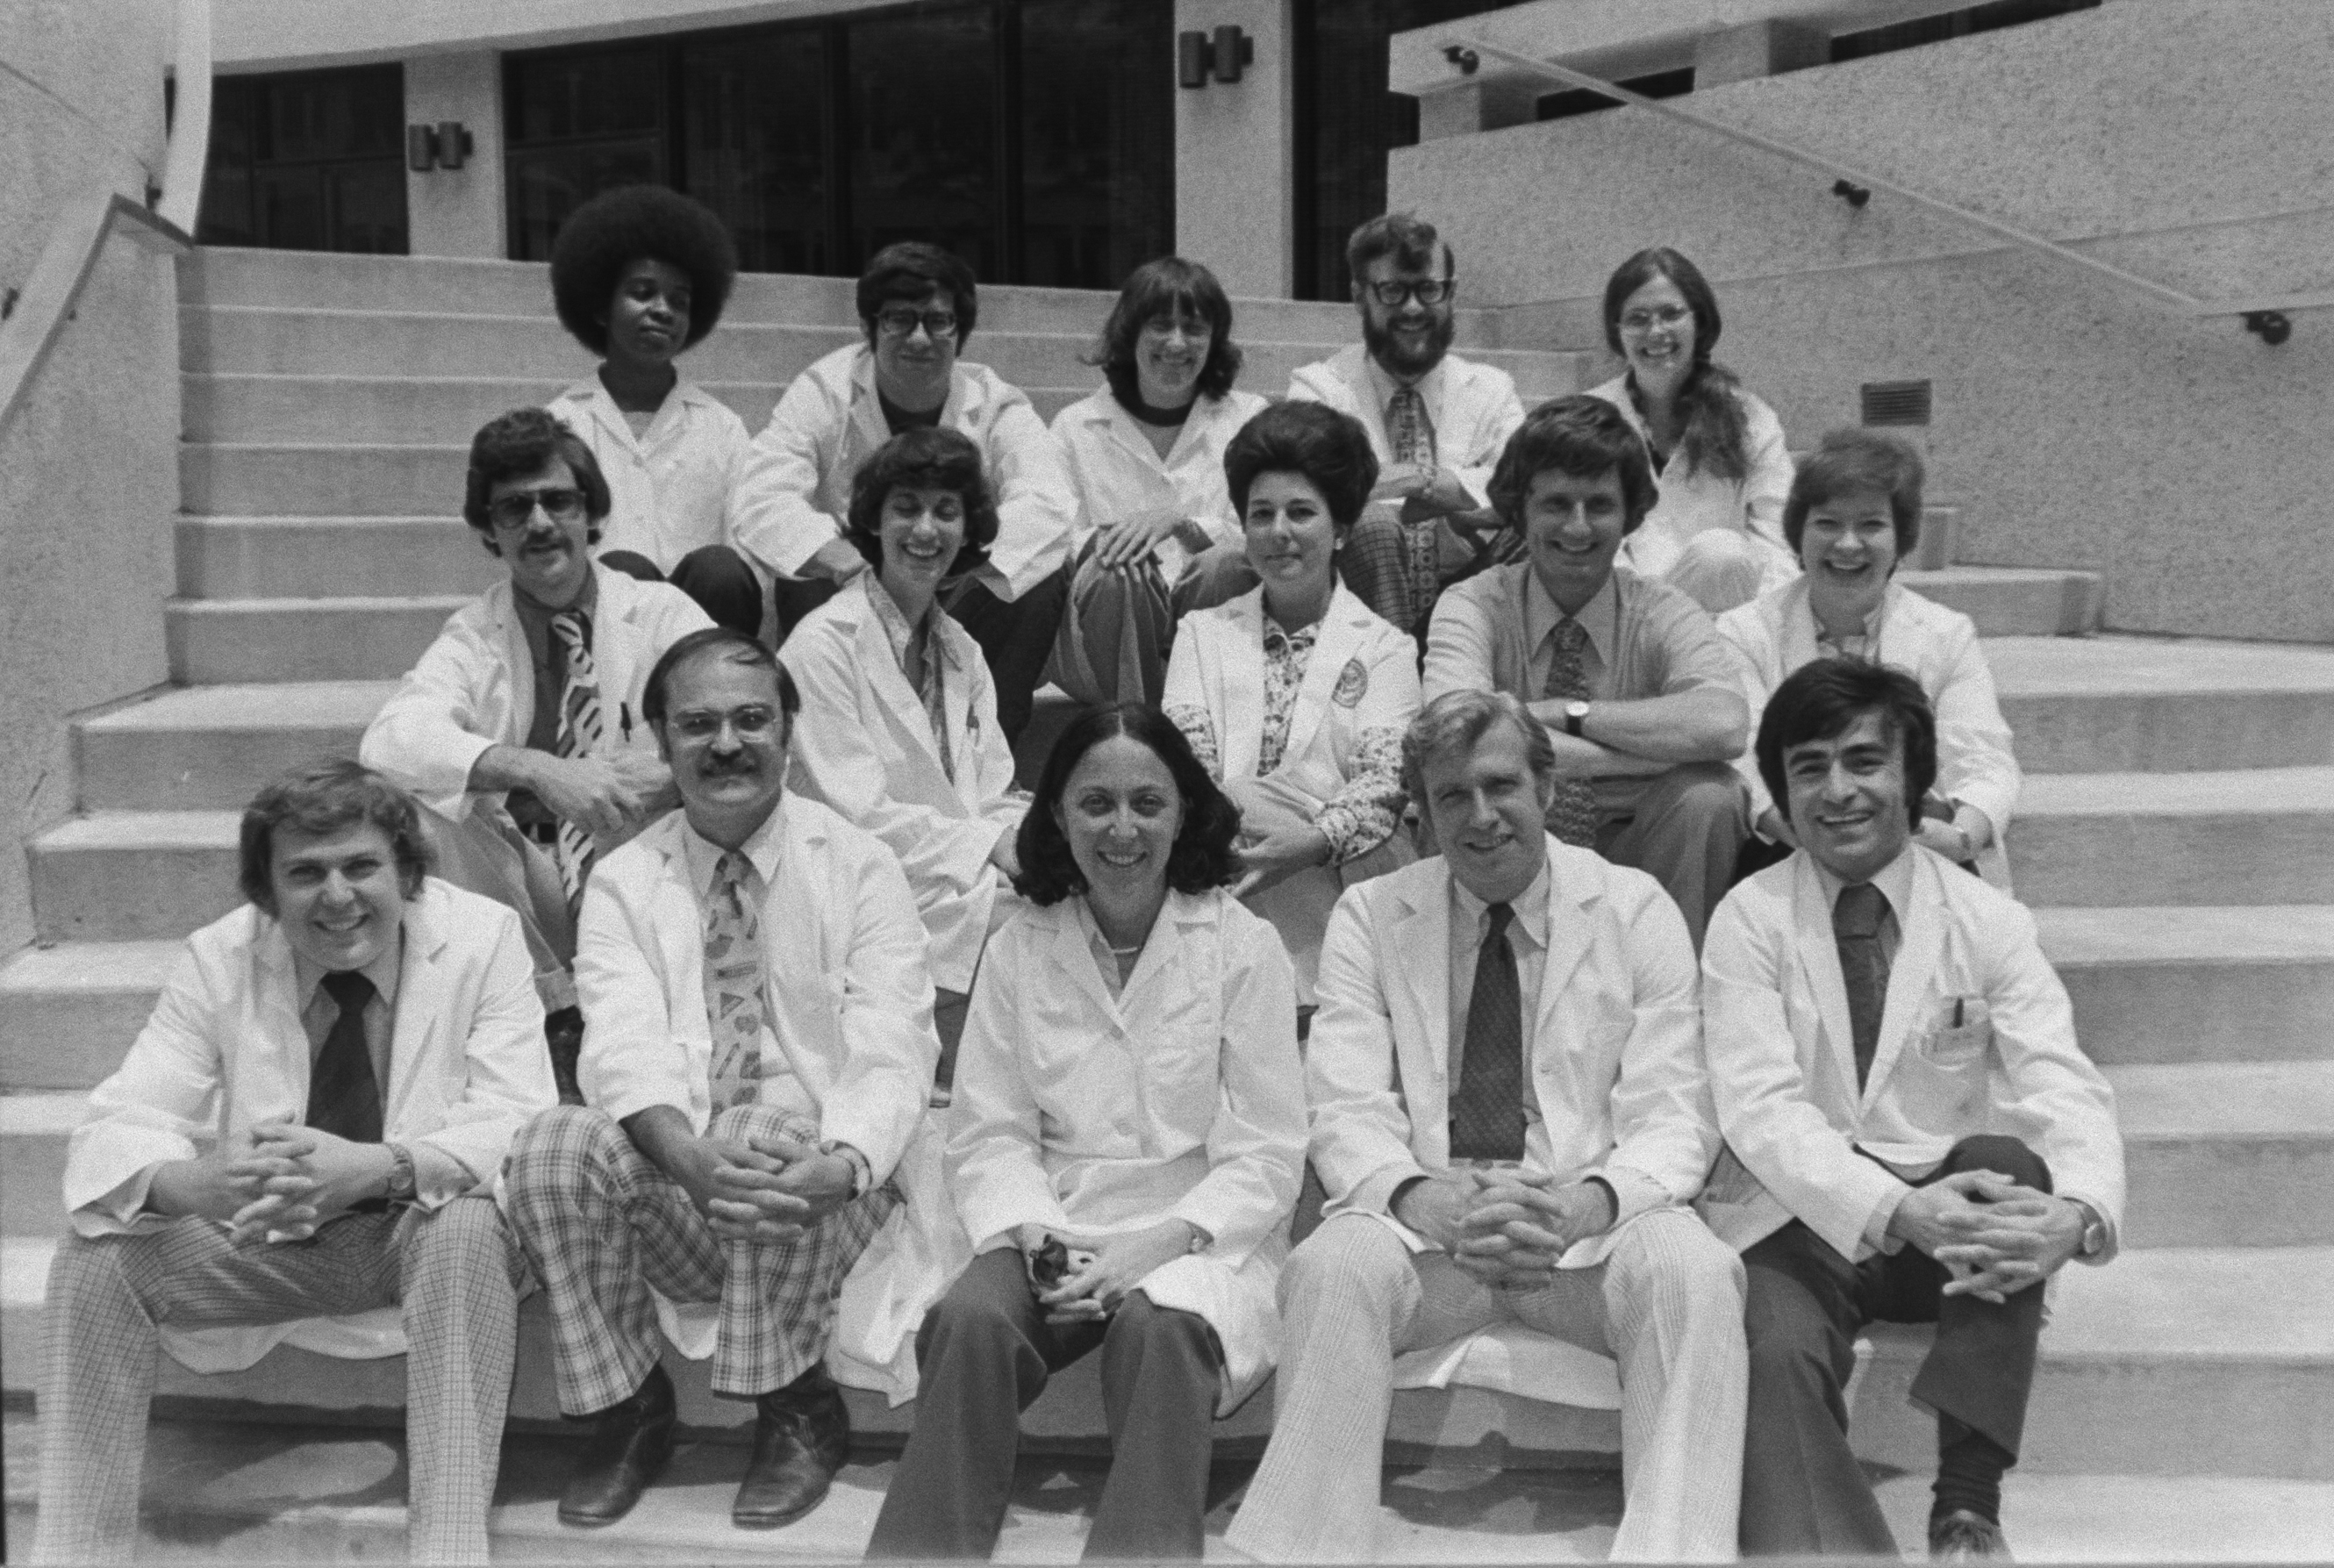 Rheumatologist Dr. Naomi Rothfield, front row center, with the first class of medical students at UConn Health, then known as the UConn Health Center.